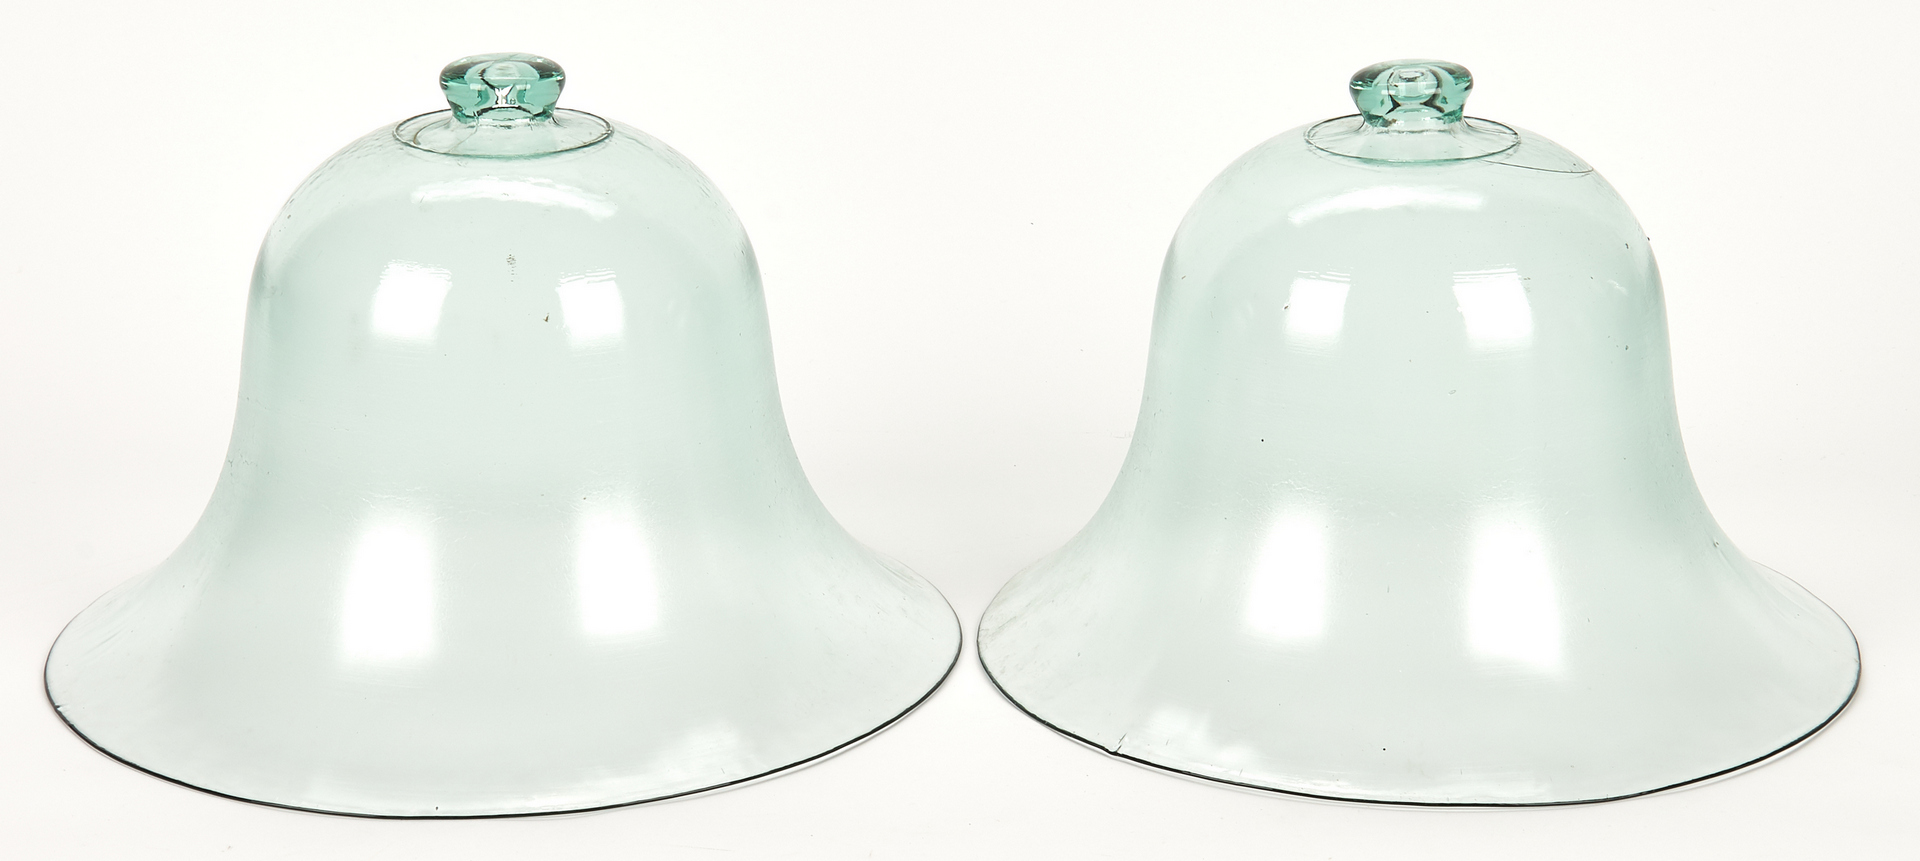 Lot 652: 4 Glass Garden Cloches or Bell Domes